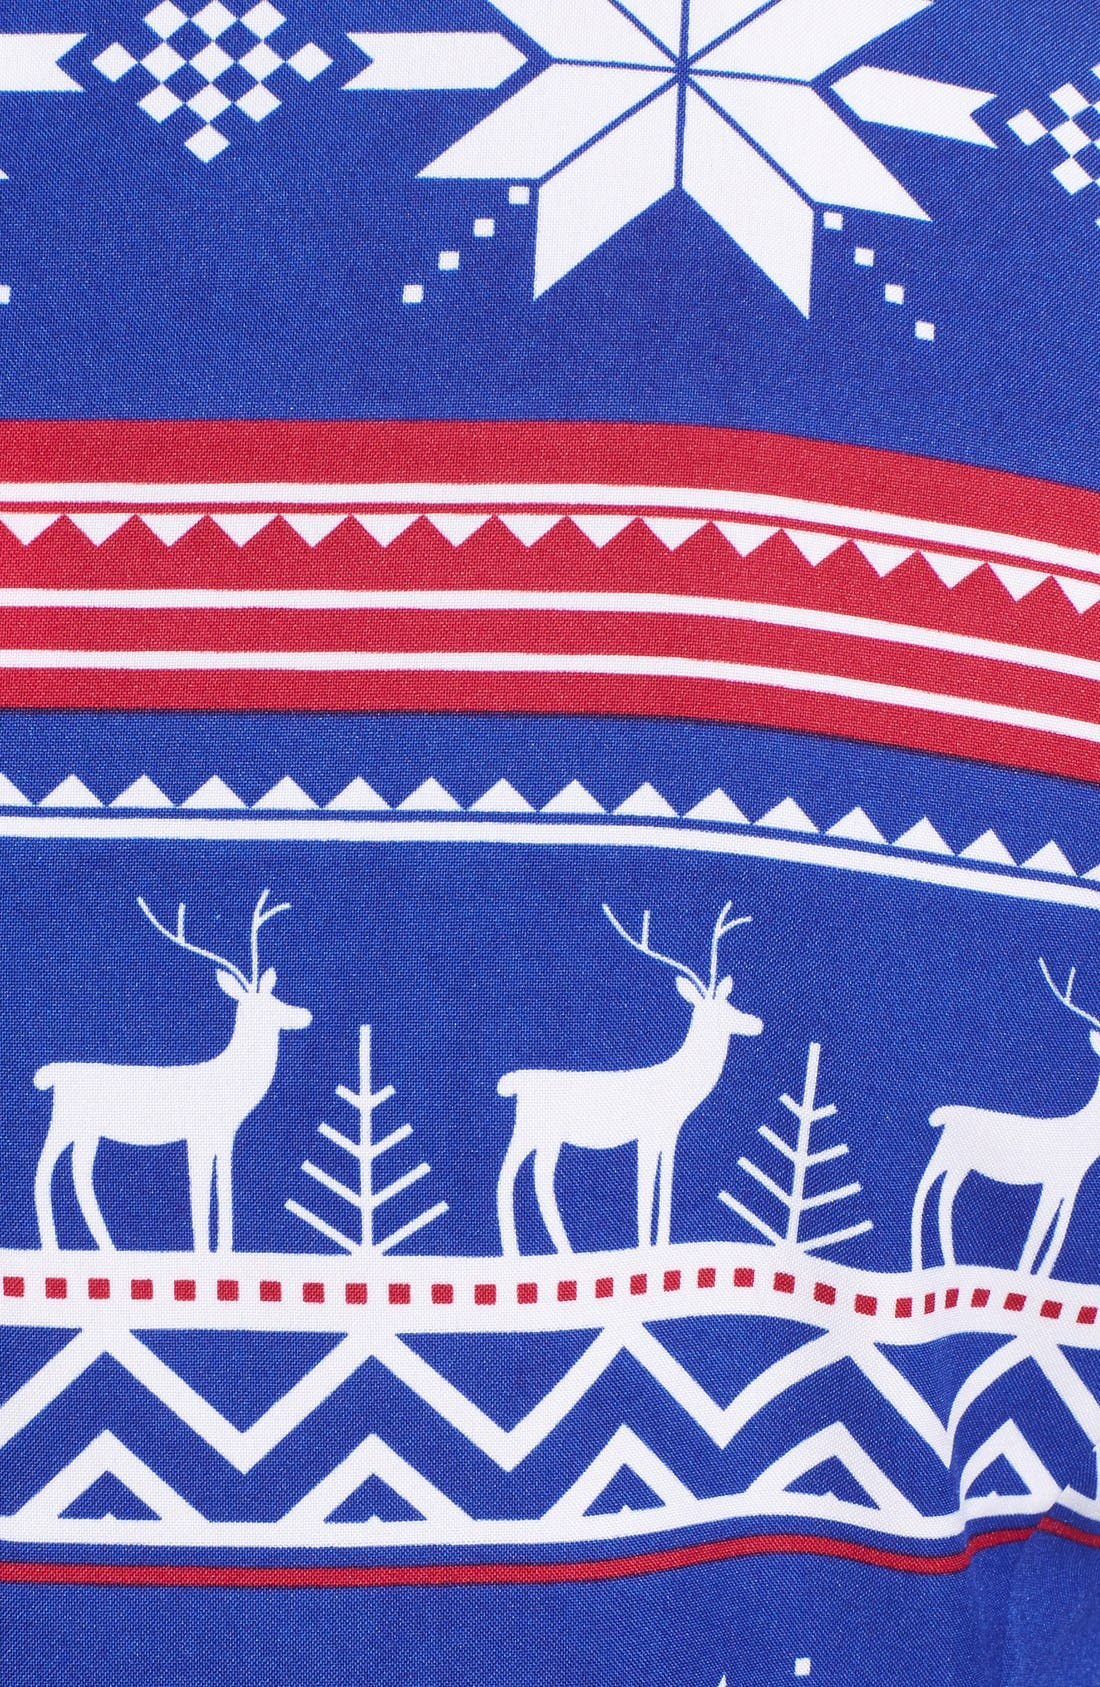 'Rudolph' Holiday Suit & Tie,                             Alternate thumbnail 6, color,                             400